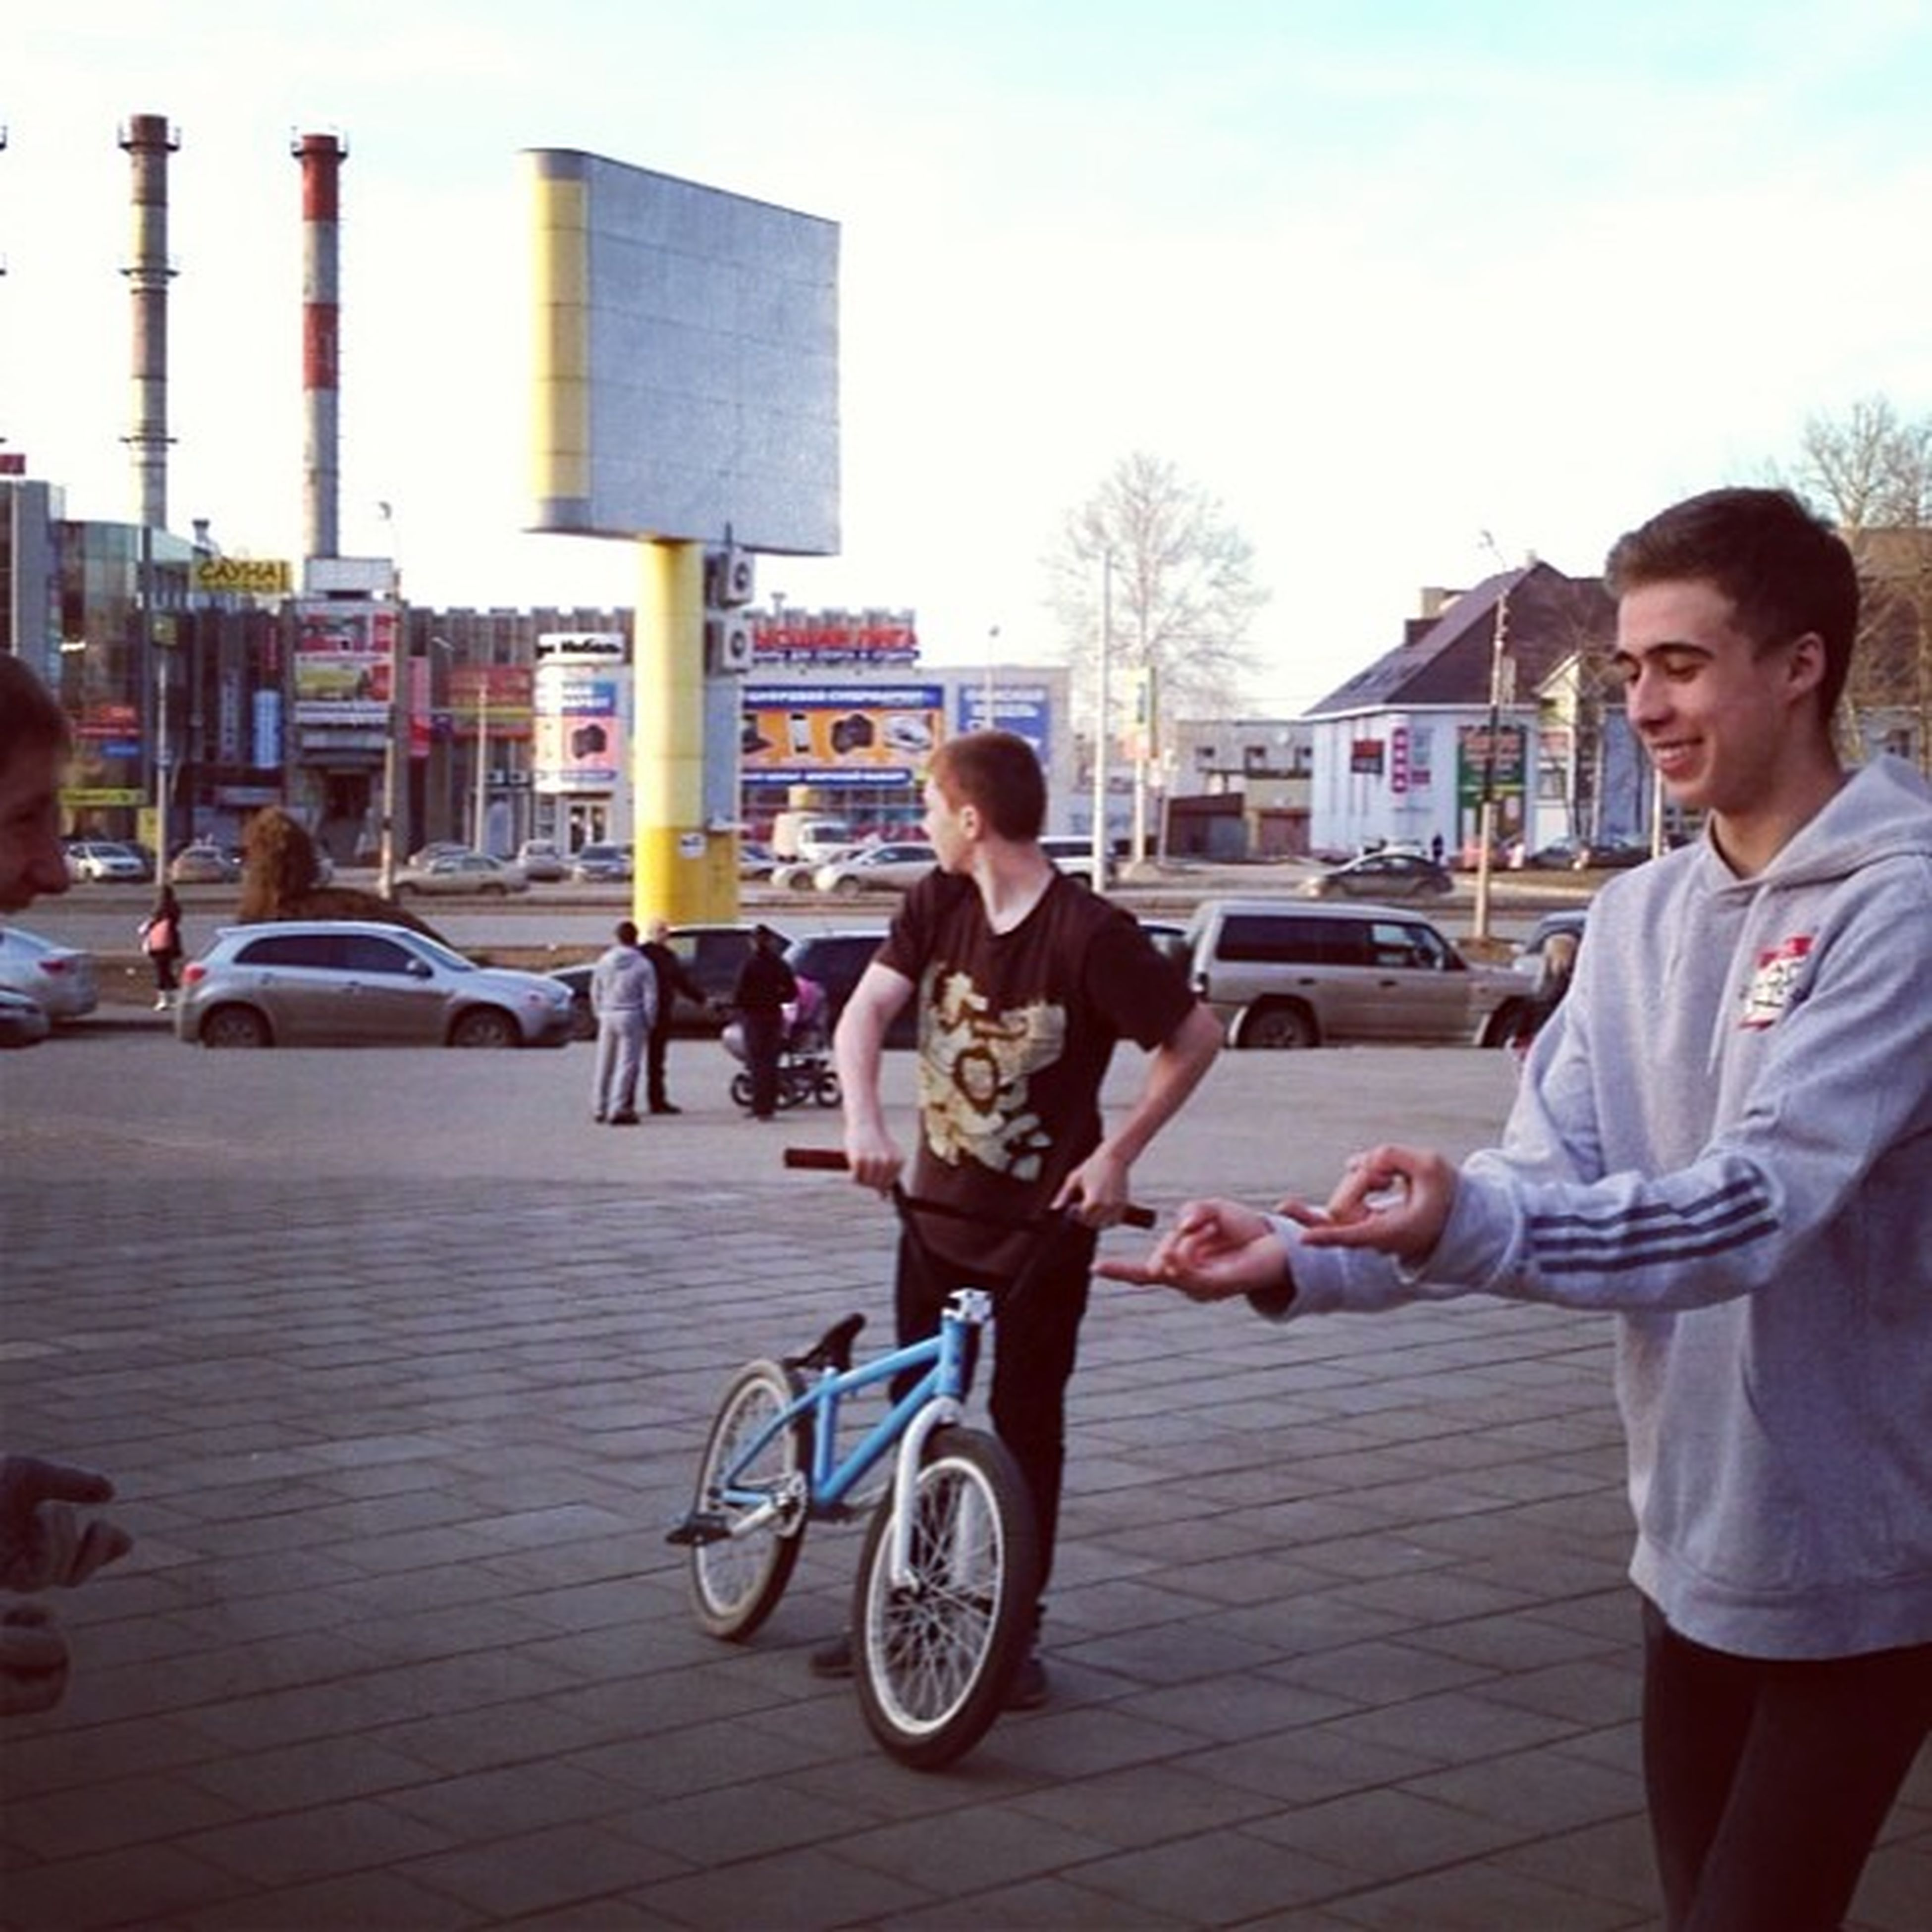 lifestyles, leisure activity, casual clothing, person, full length, land vehicle, transportation, building exterior, mode of transport, young adult, bicycle, architecture, city, street, built structure, city life, young men